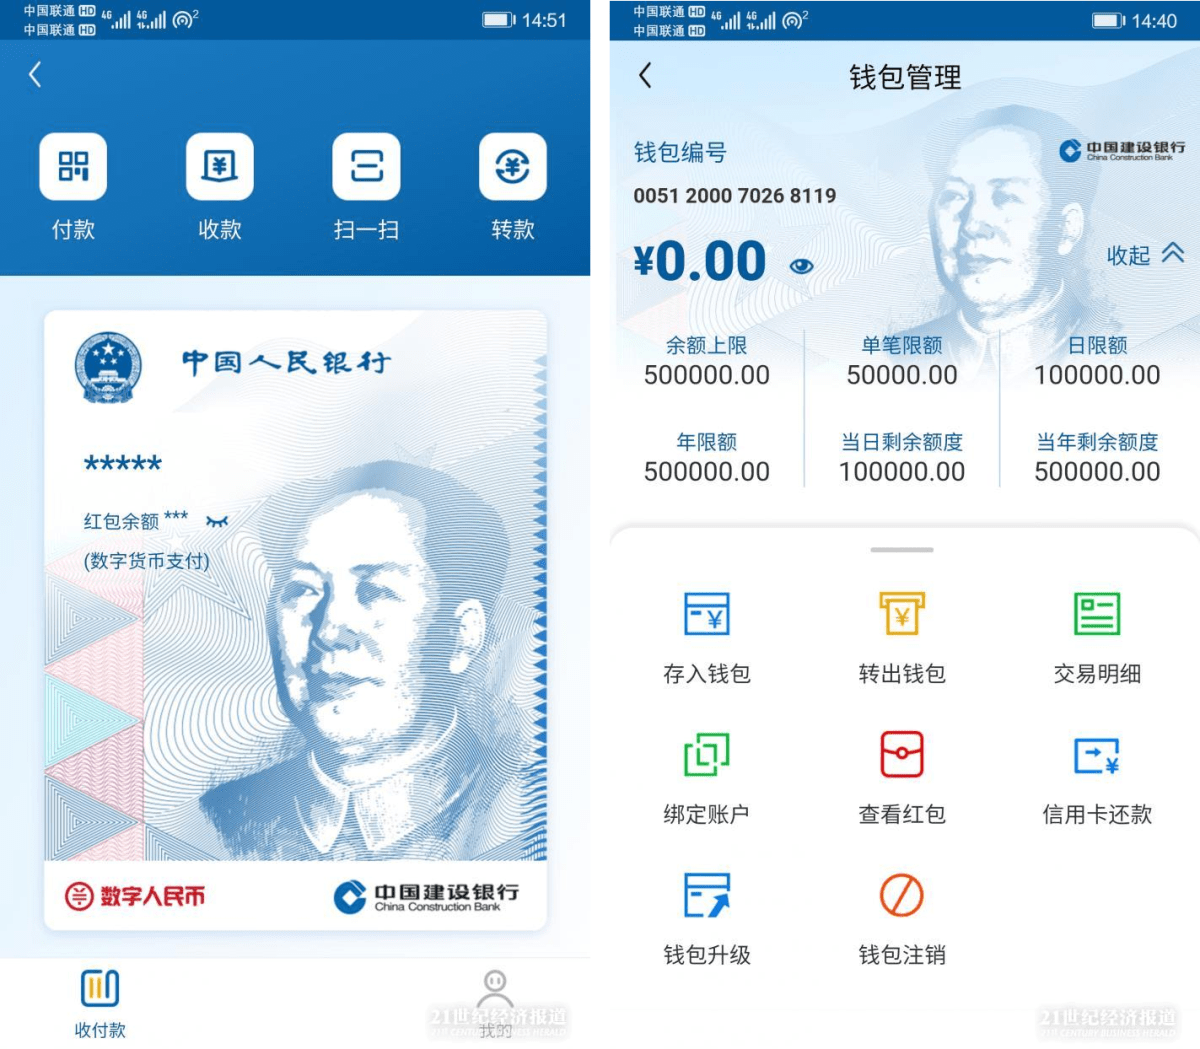 Major Chinese Bank Launches Central Bank Digital Currency Wallet Briefly